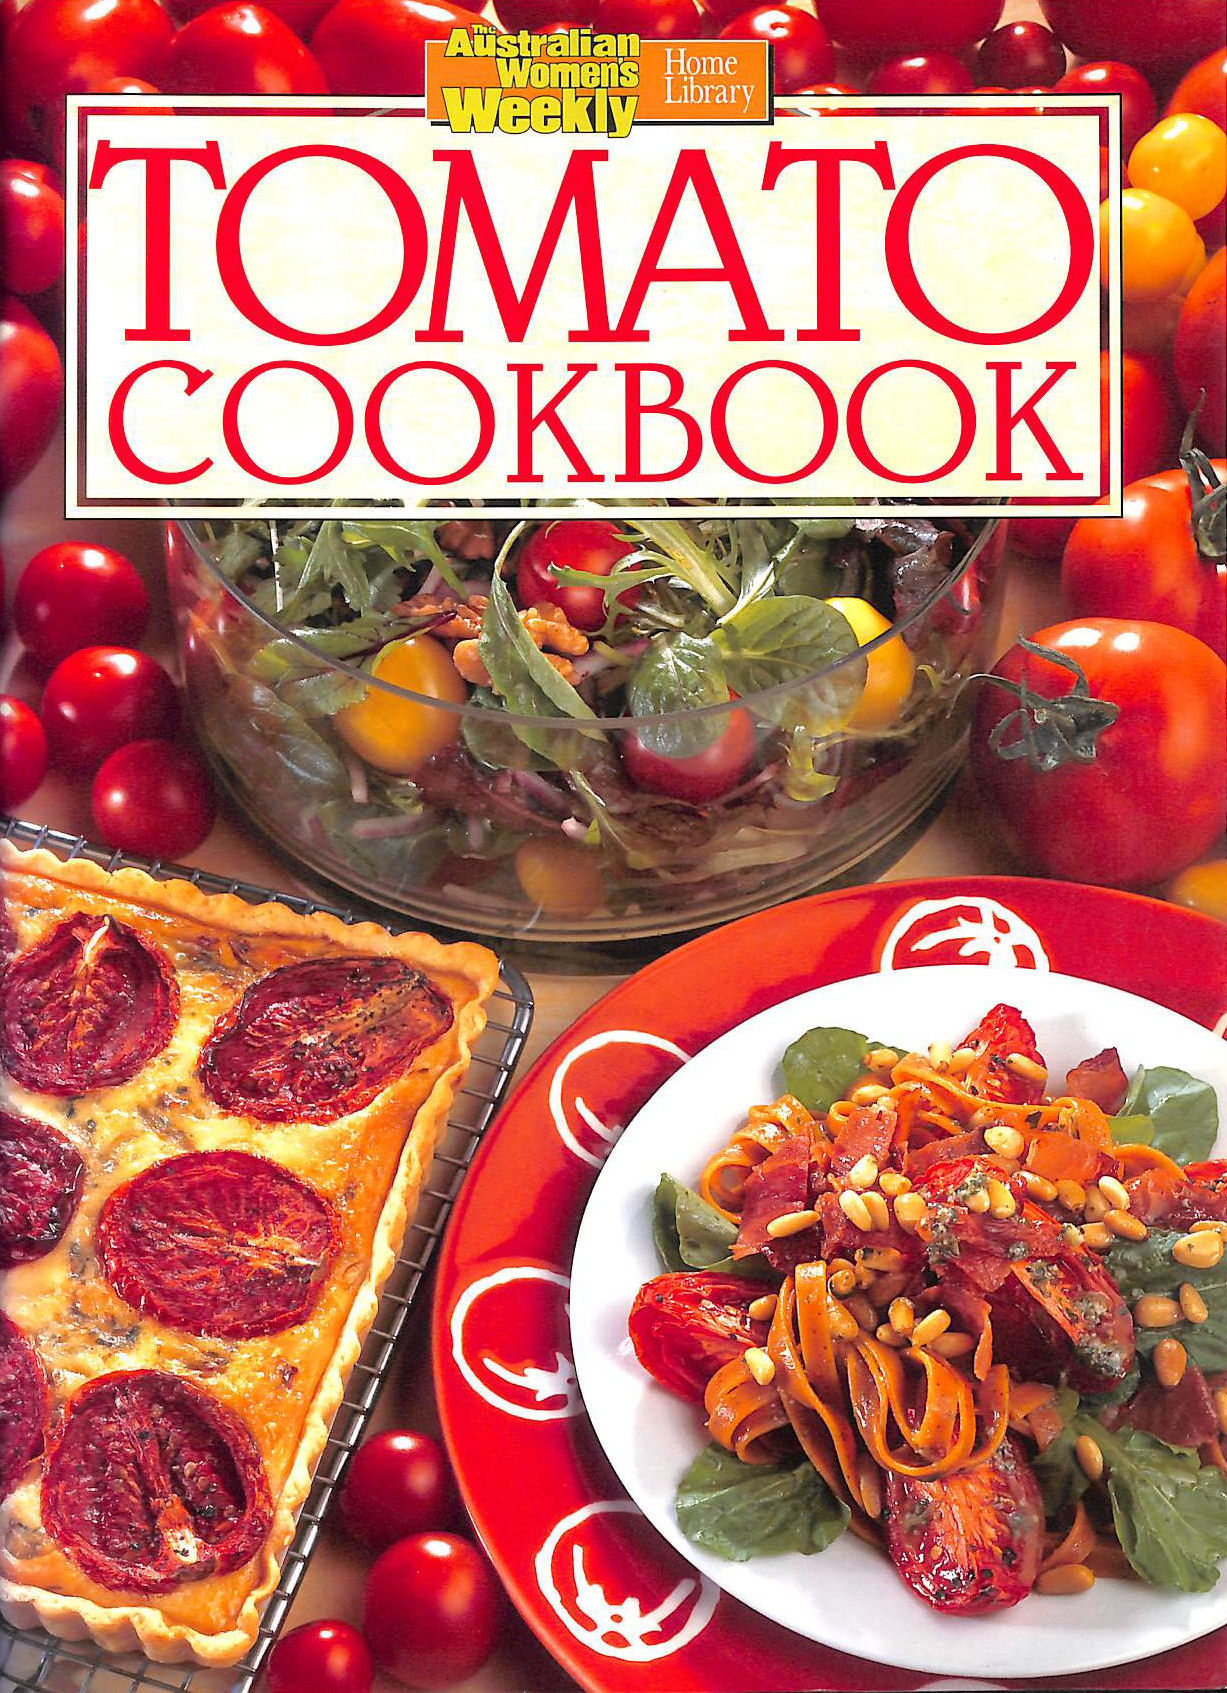 Image for Tomato Cookbook. Australian Women's Weekly Home Library